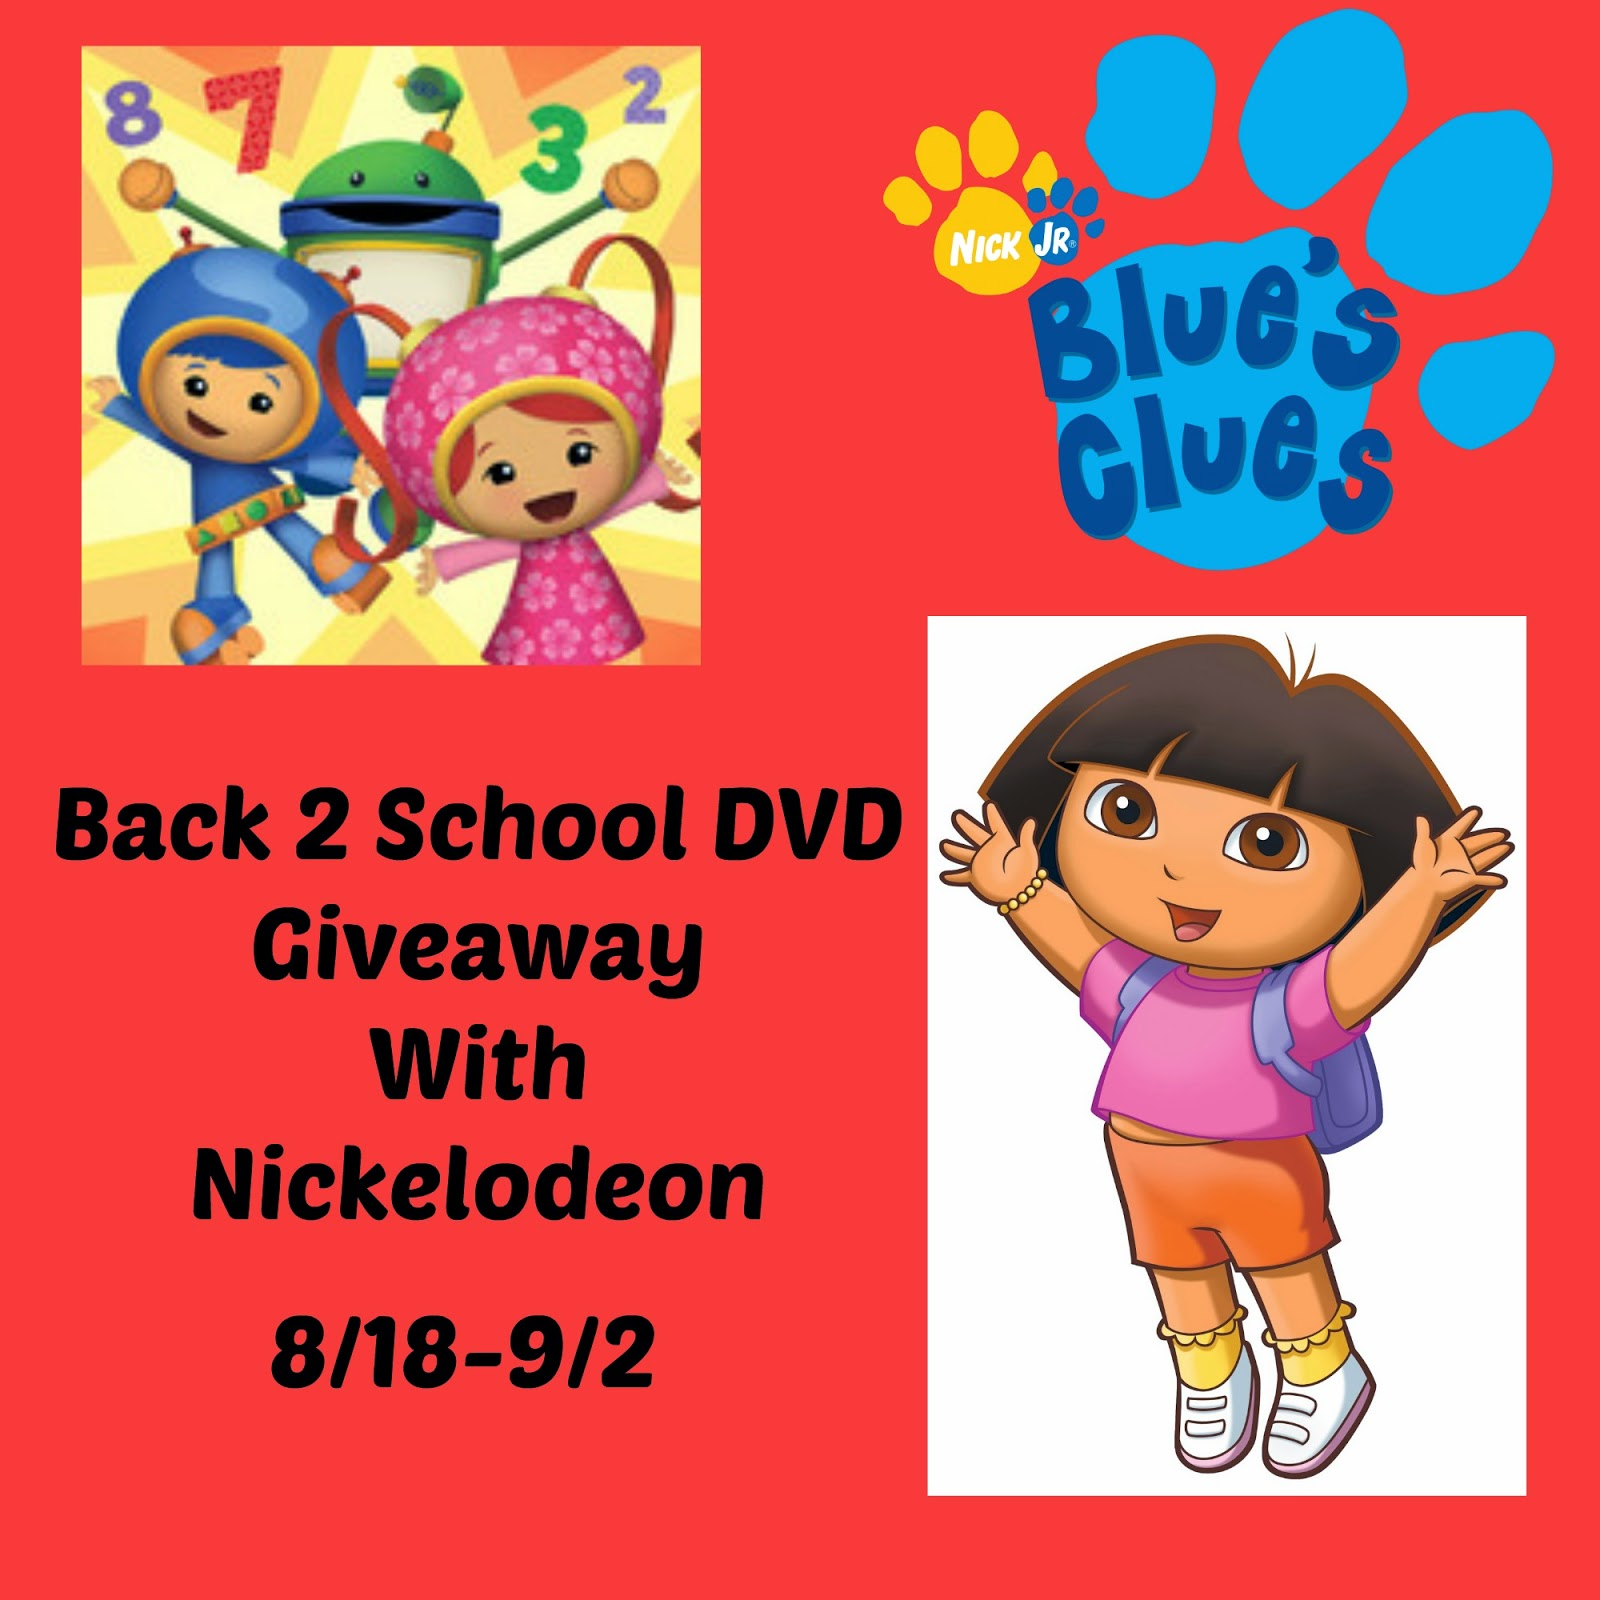 Back 2 School Nickelodeon DVD Collection Giveaway #SM2SB